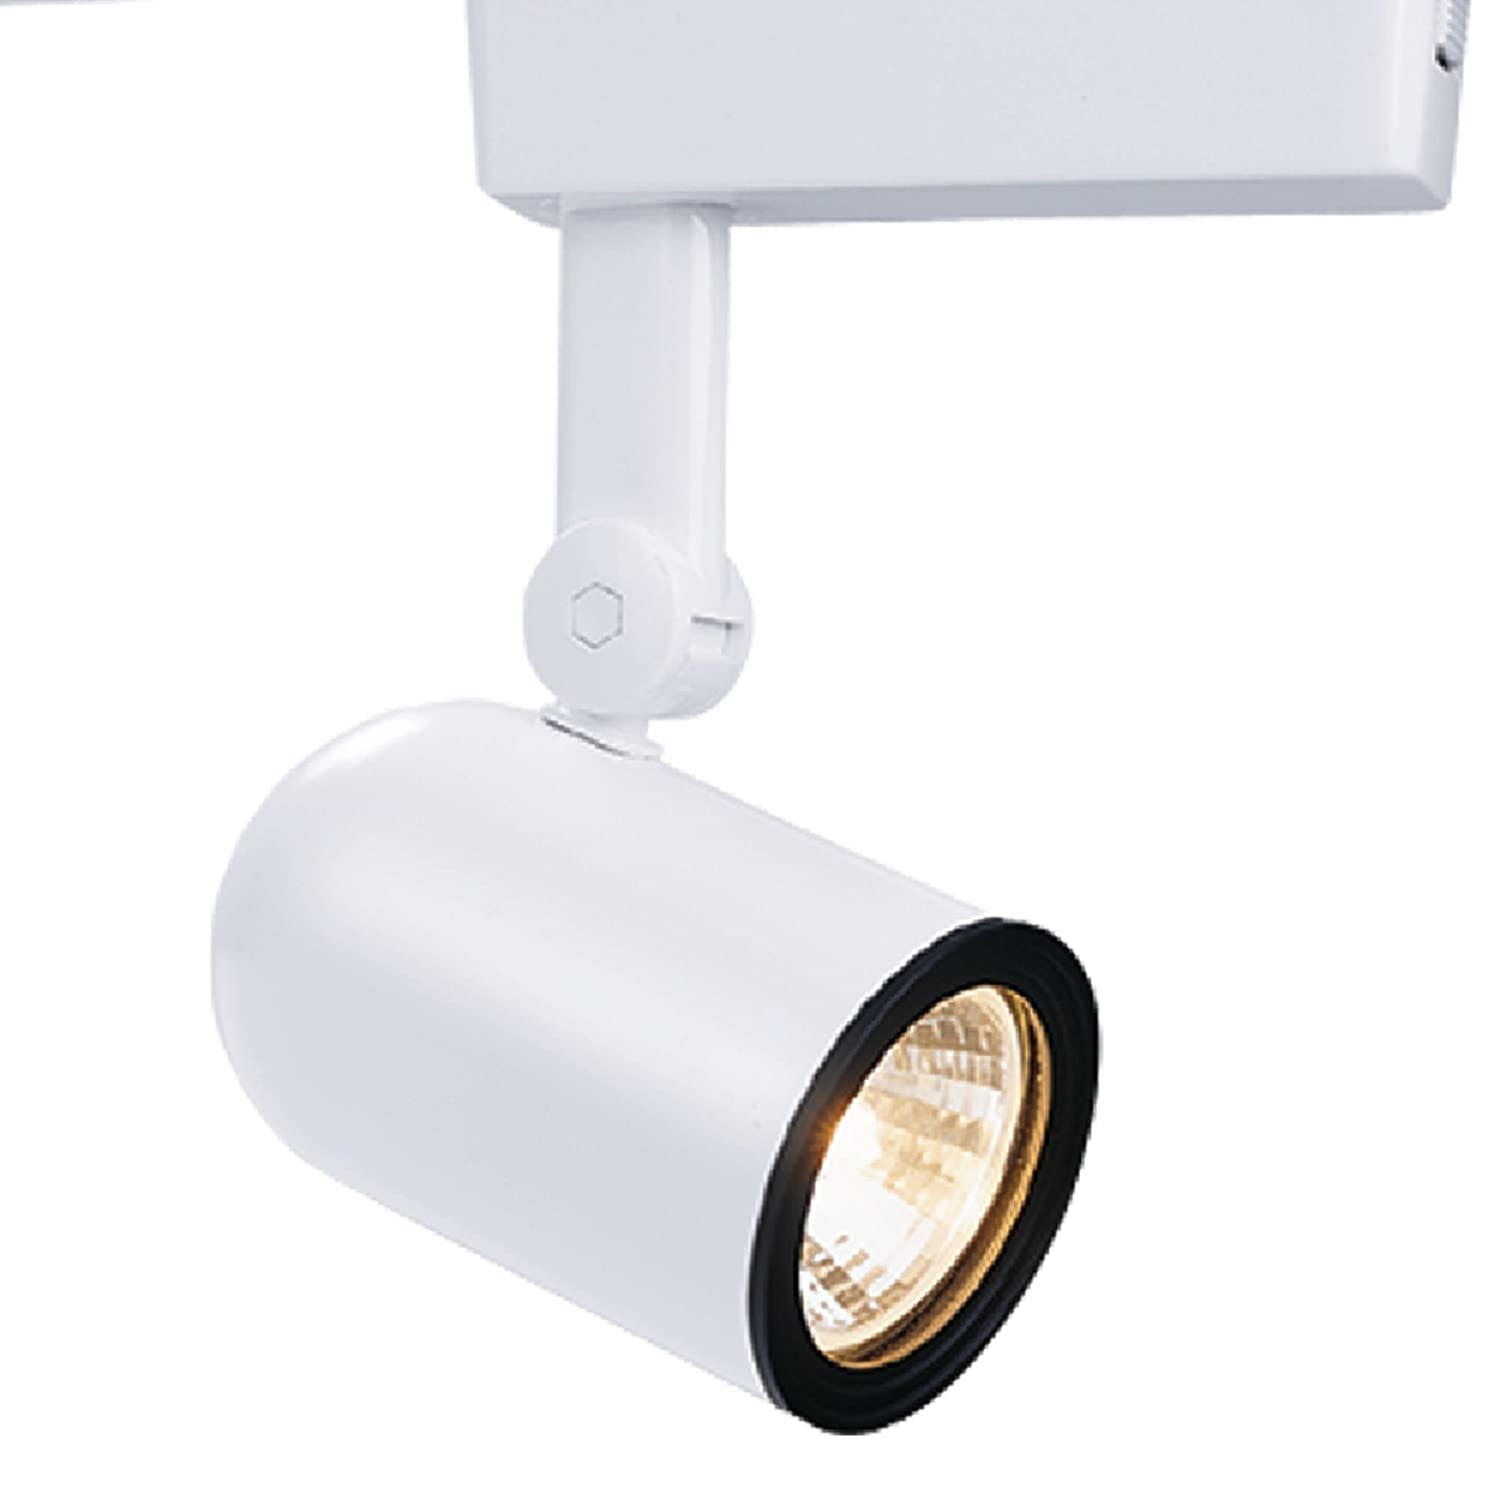 Halo lzr405p lazer low voltage roundback cylinder lamp holder with halo lzr405p lazer low voltage roundback cylinder lamp holder with electronic transformer white mr16 track lighting rails amazon industrial arubaitofo Gallery